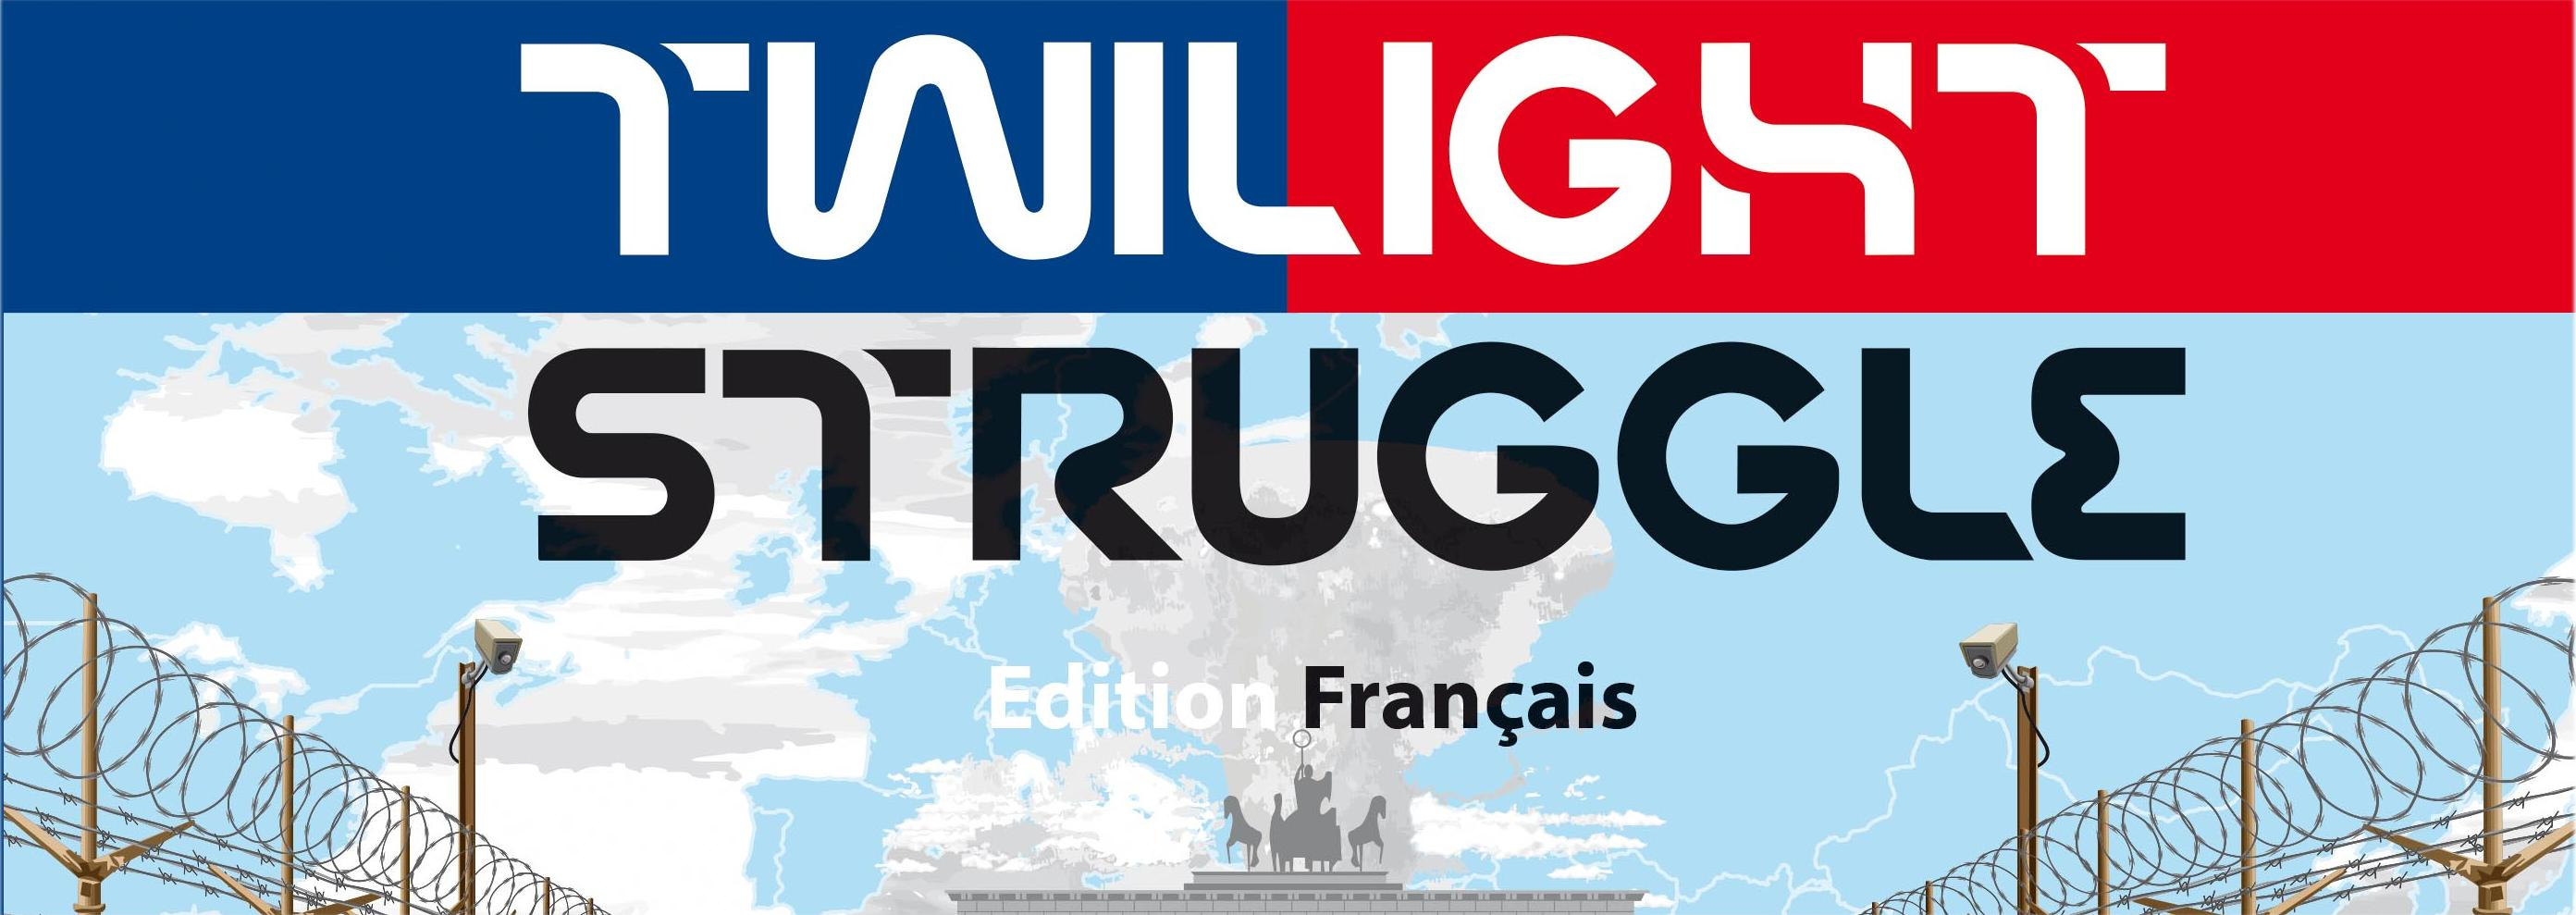 Banner Twilight Struggle F